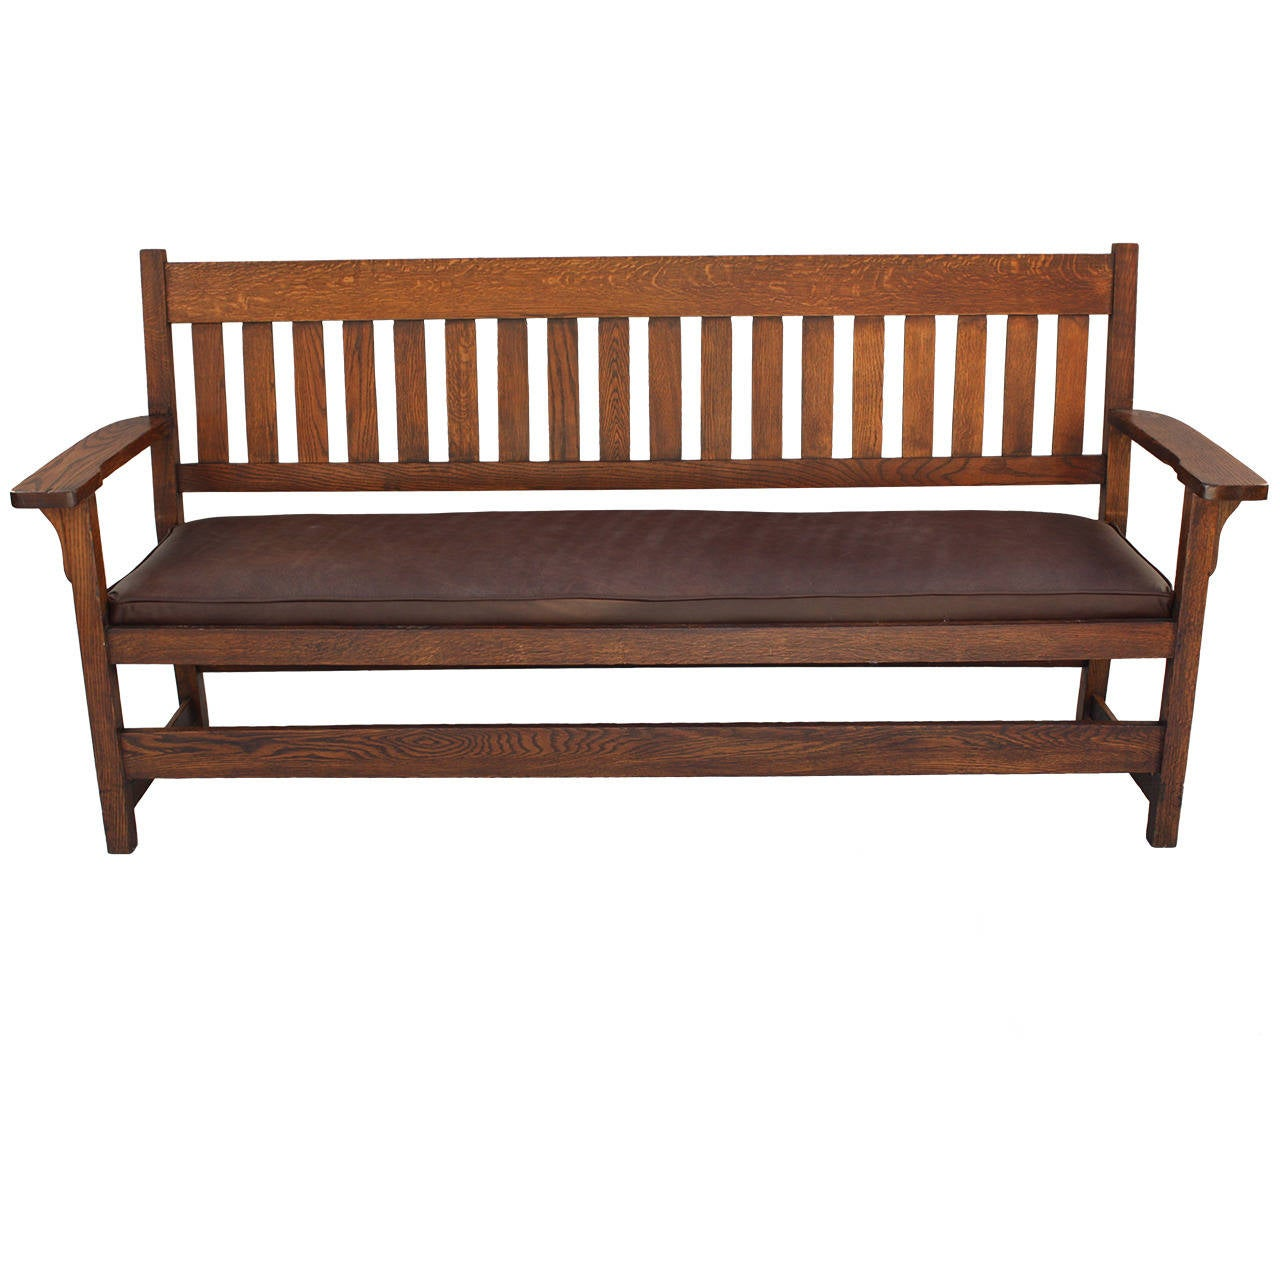 Long Mission Arts And Crafts Bench Or Settee Circa 1910 At 1stdibs